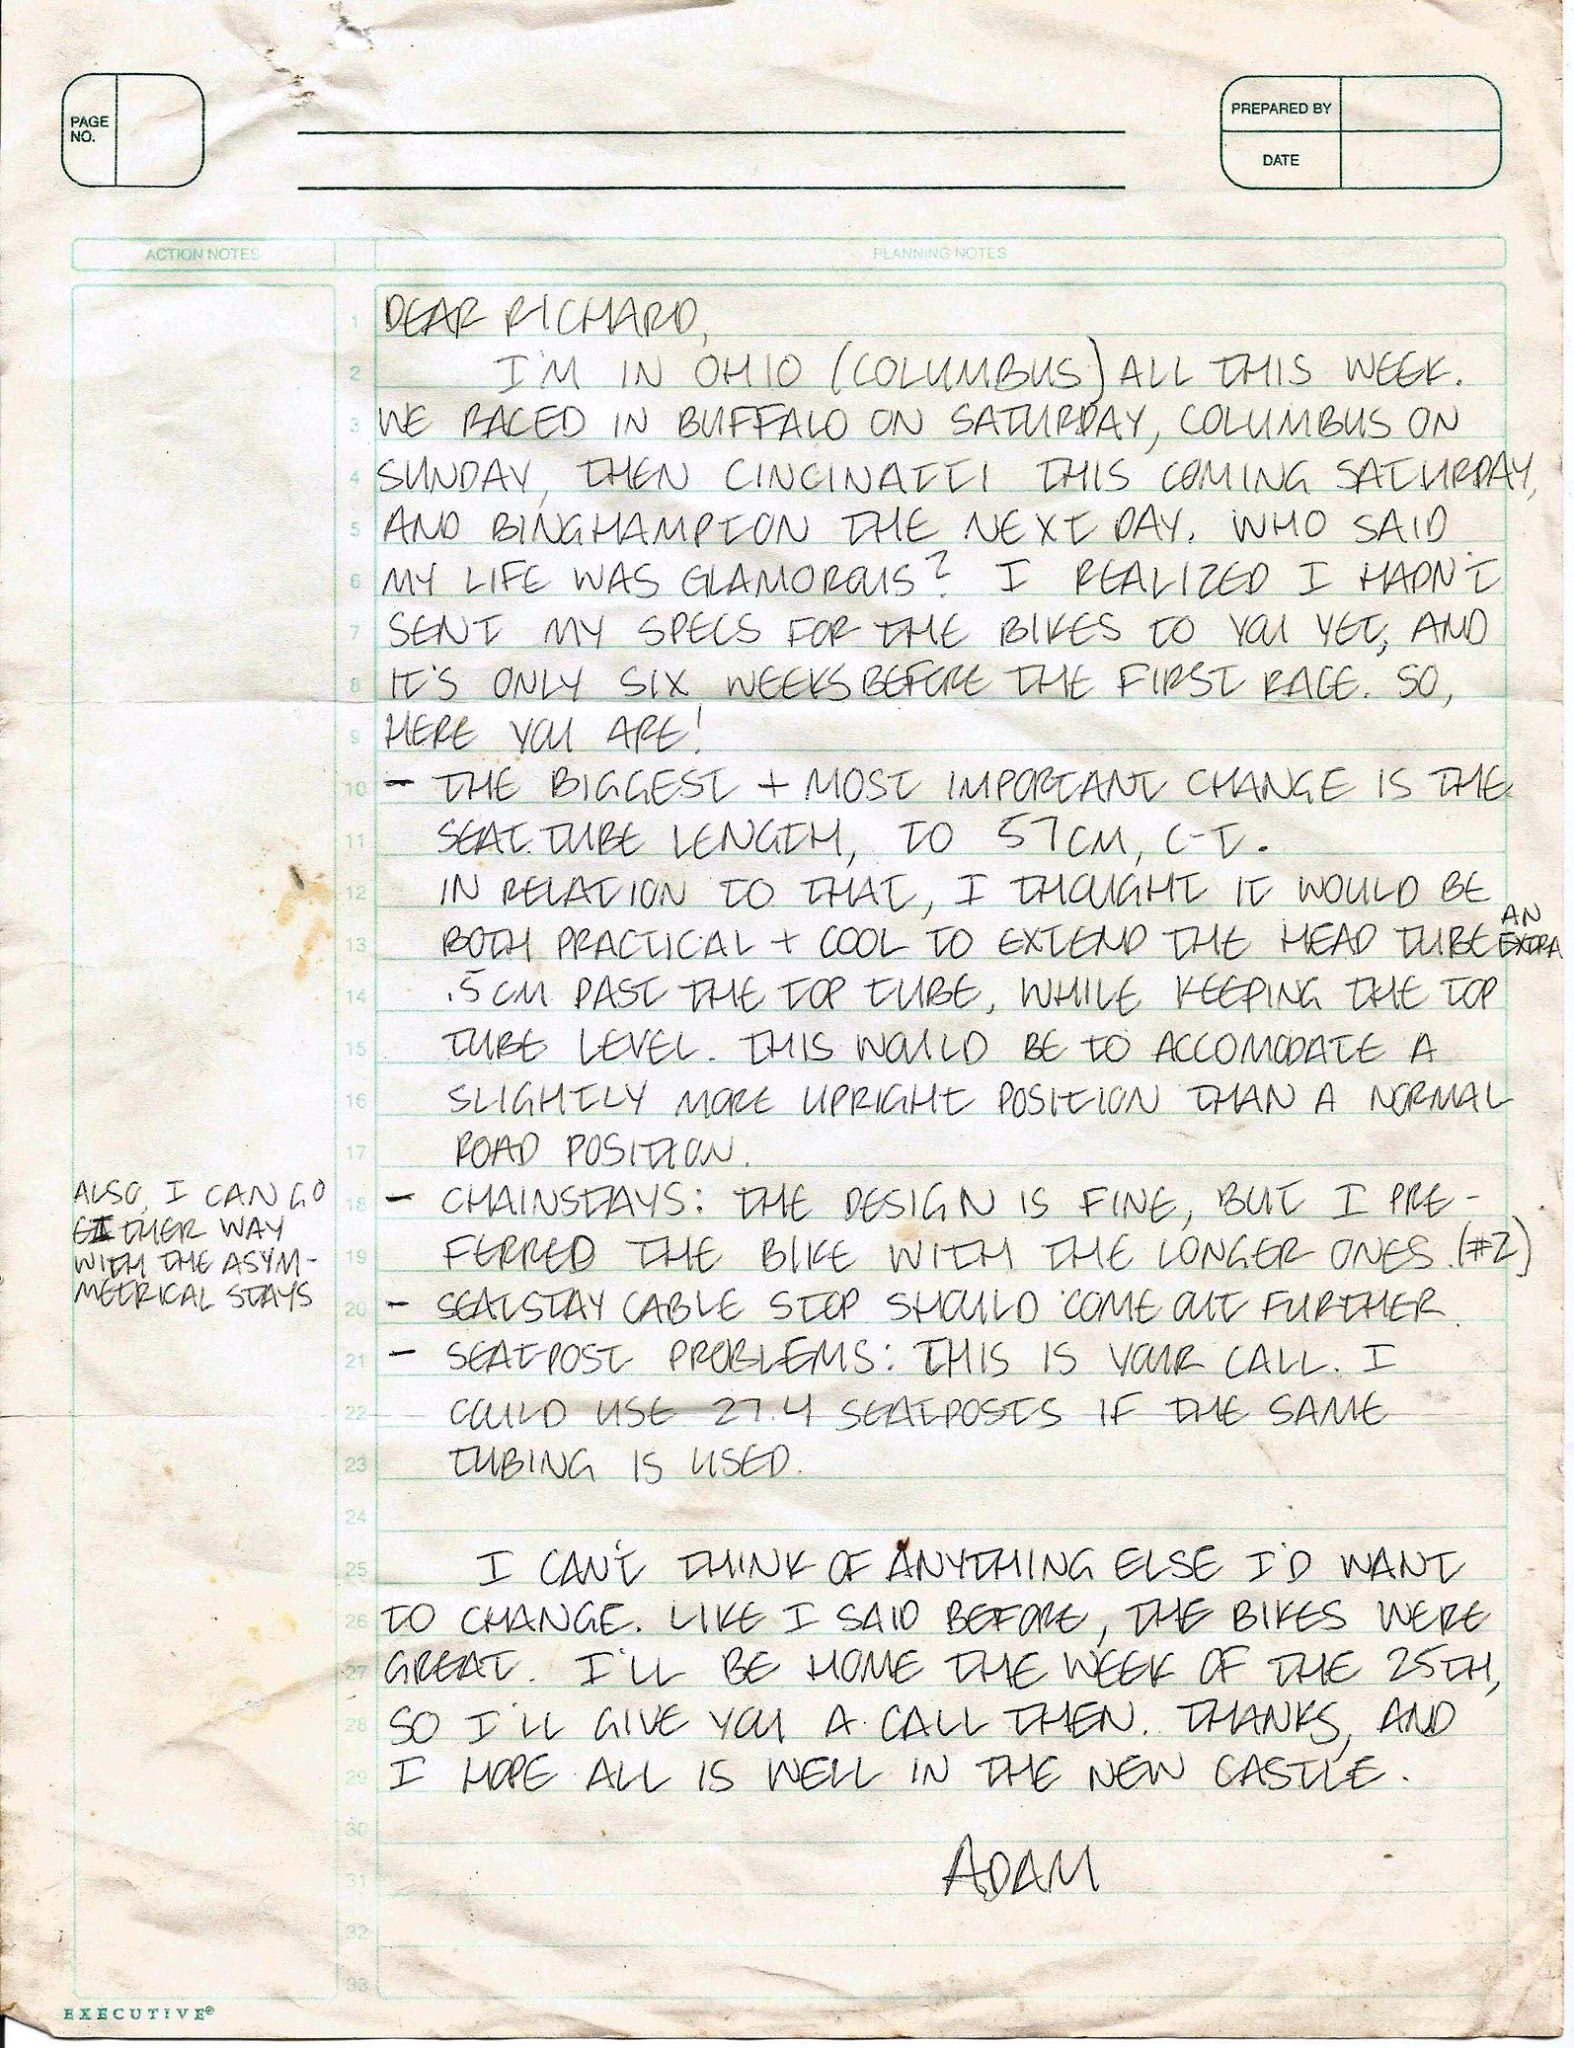 A letter Adam Myerson sent to Richard Sachs in 1997, their second season working together. The letter lays out some of the changes to the prior year's design.